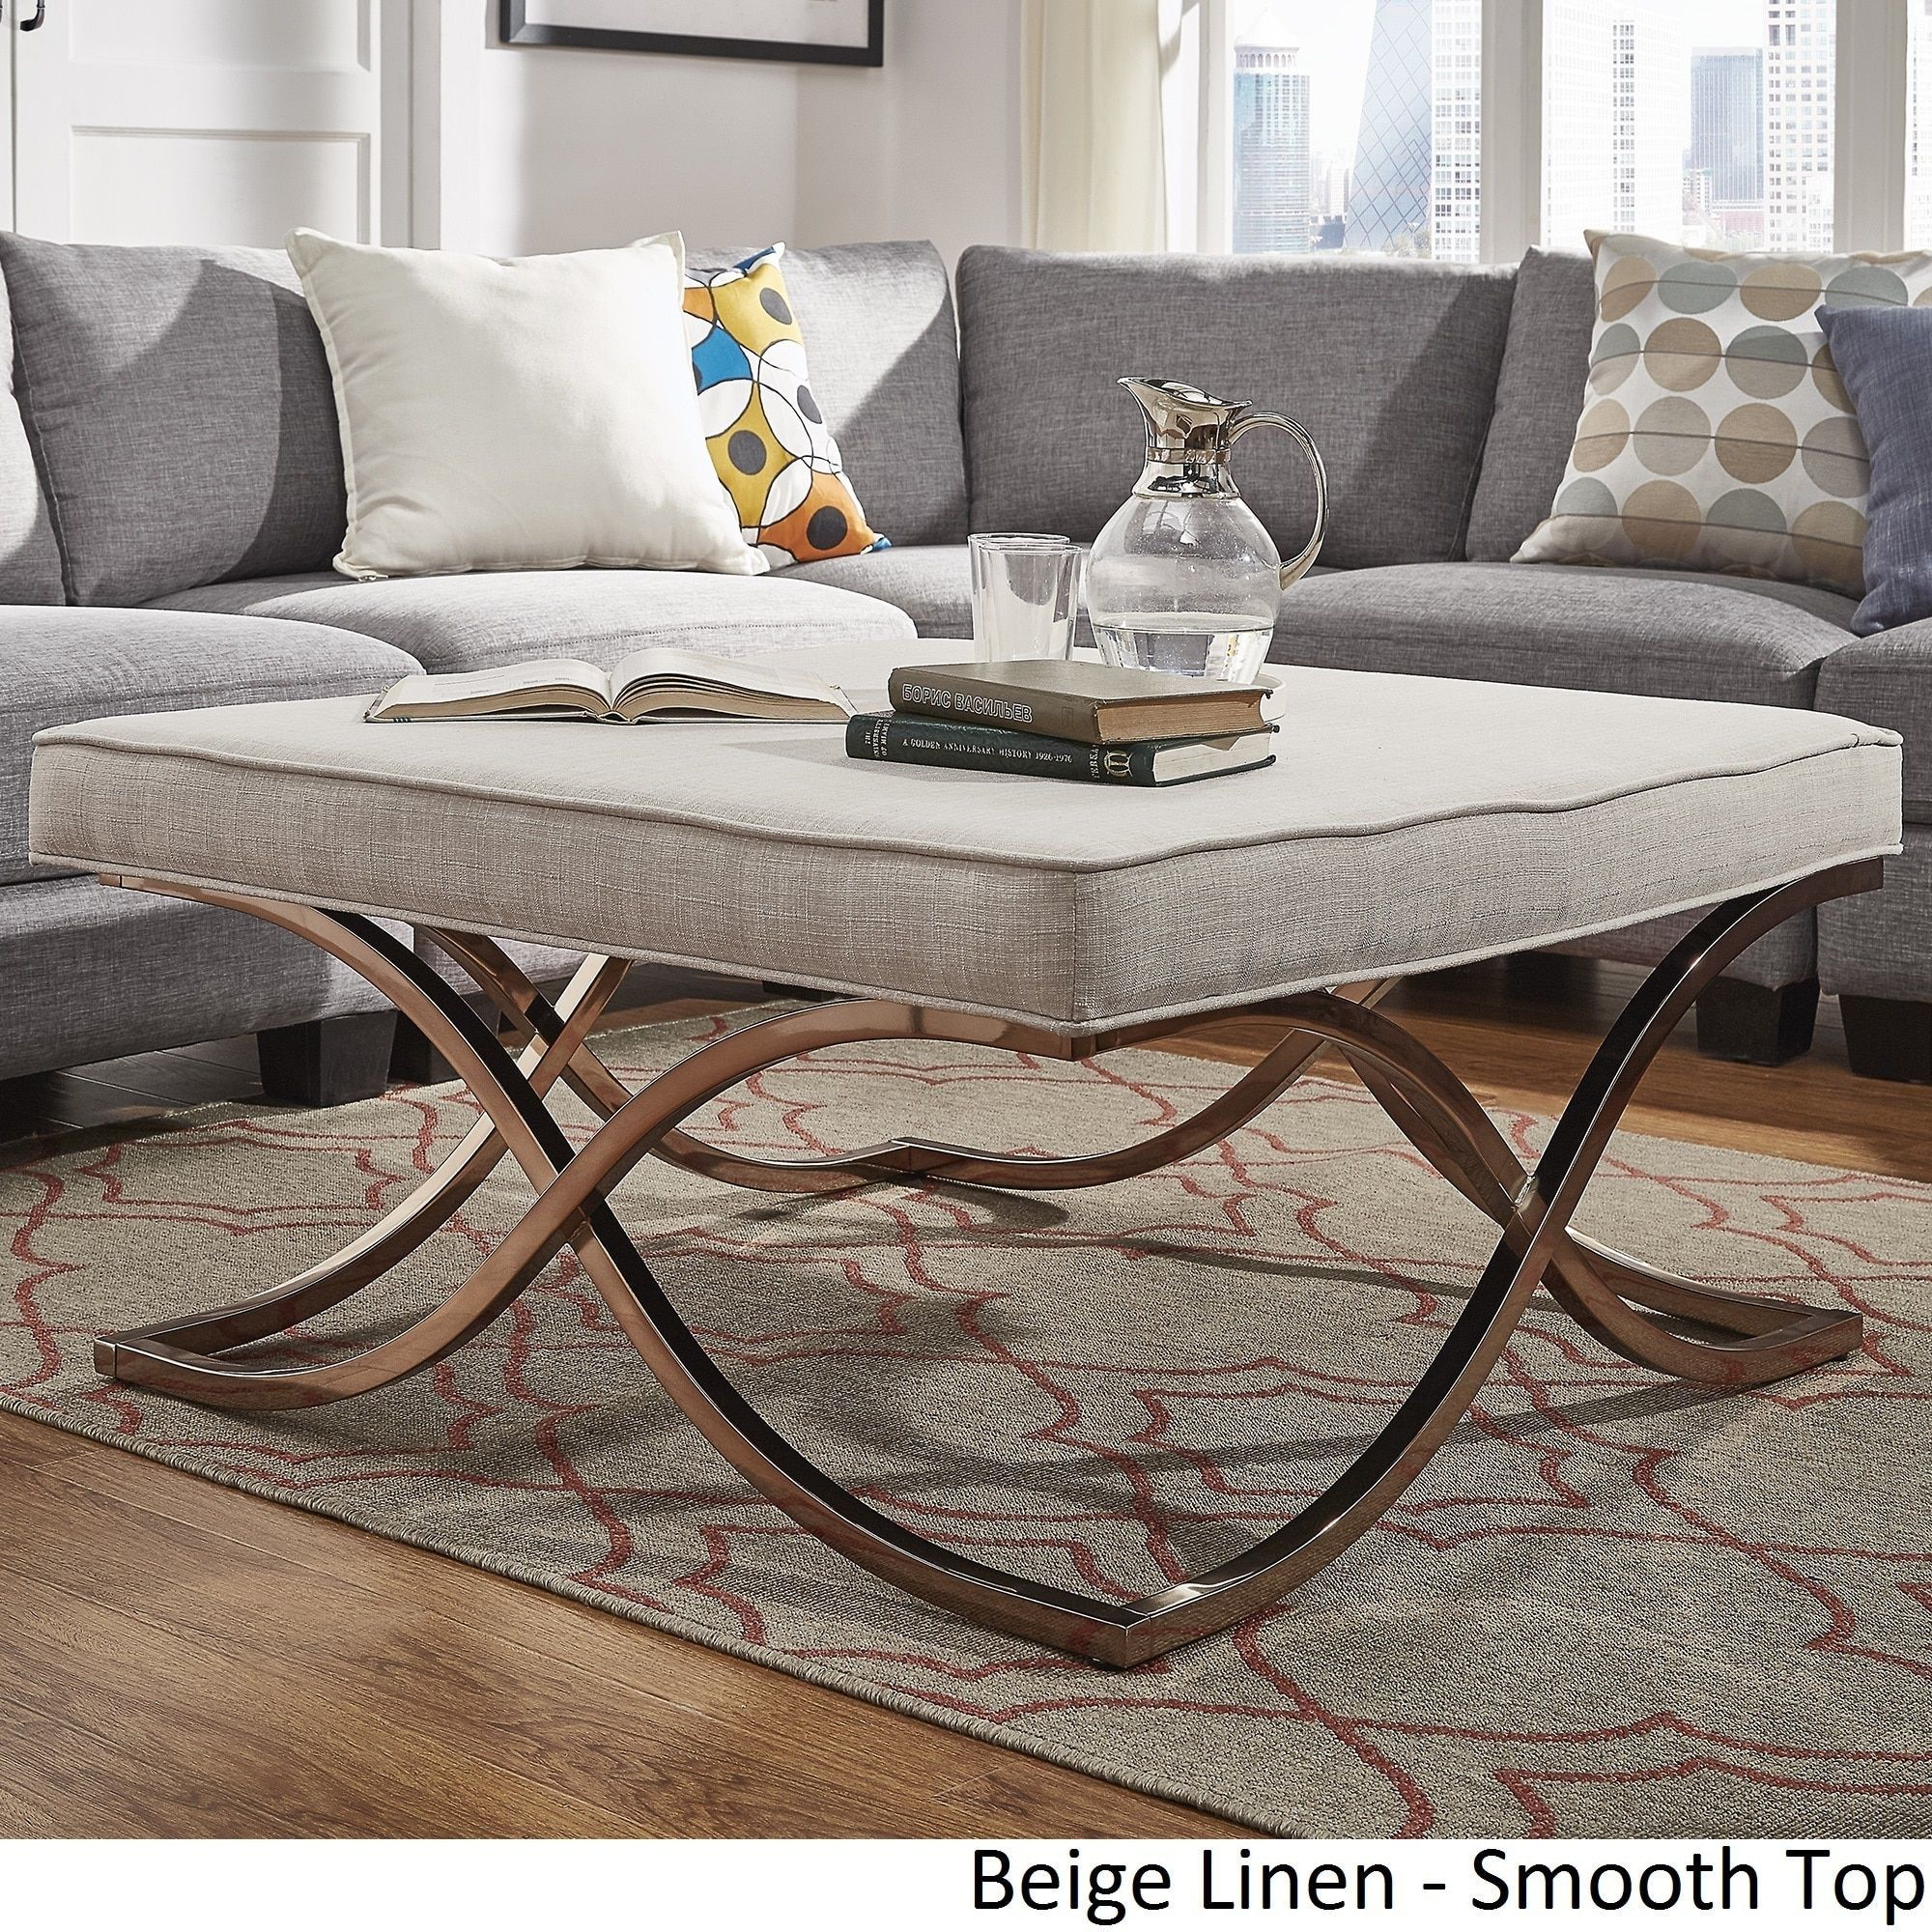 Solene X Base Square Ottoman Coffee Table - Champagne Gold by Inspire Q  ([Beige